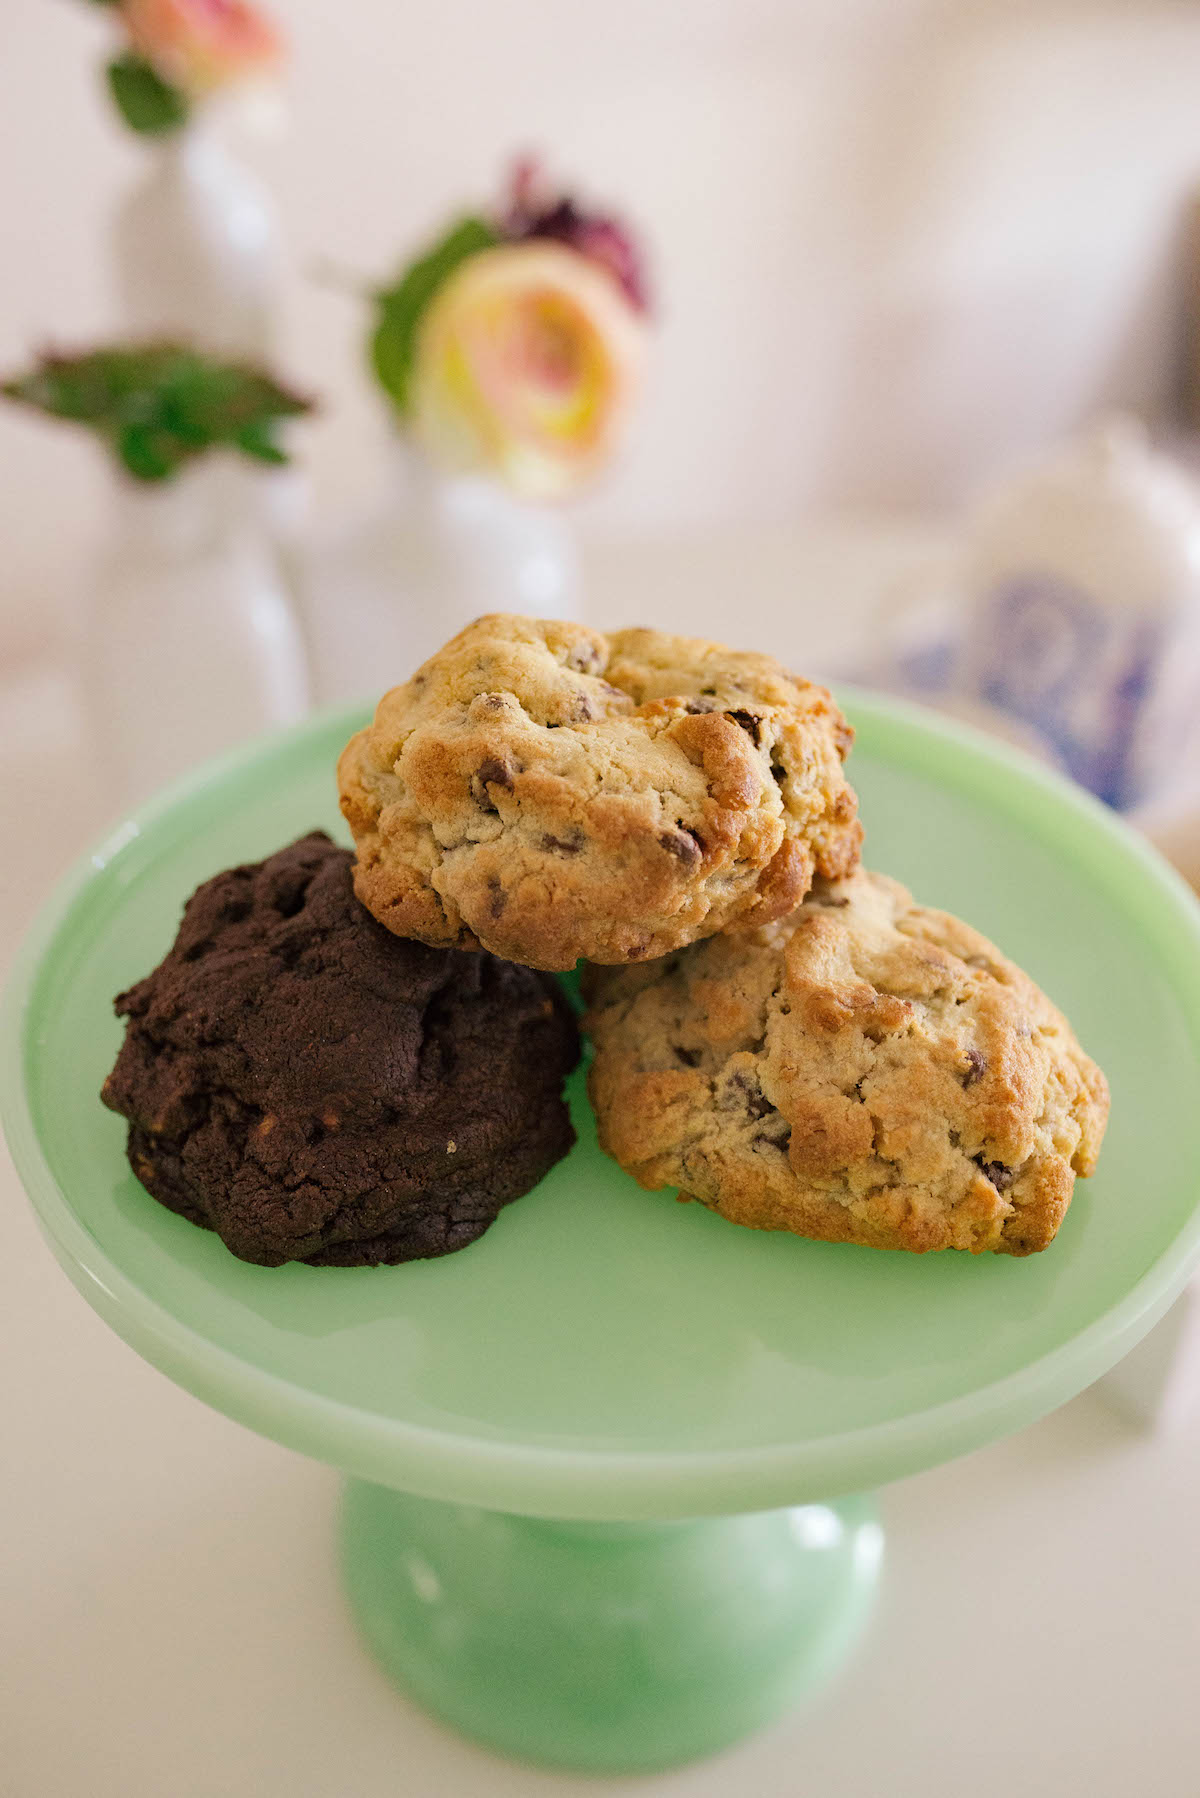 Levains Bakery Chocolate Chip Cookie